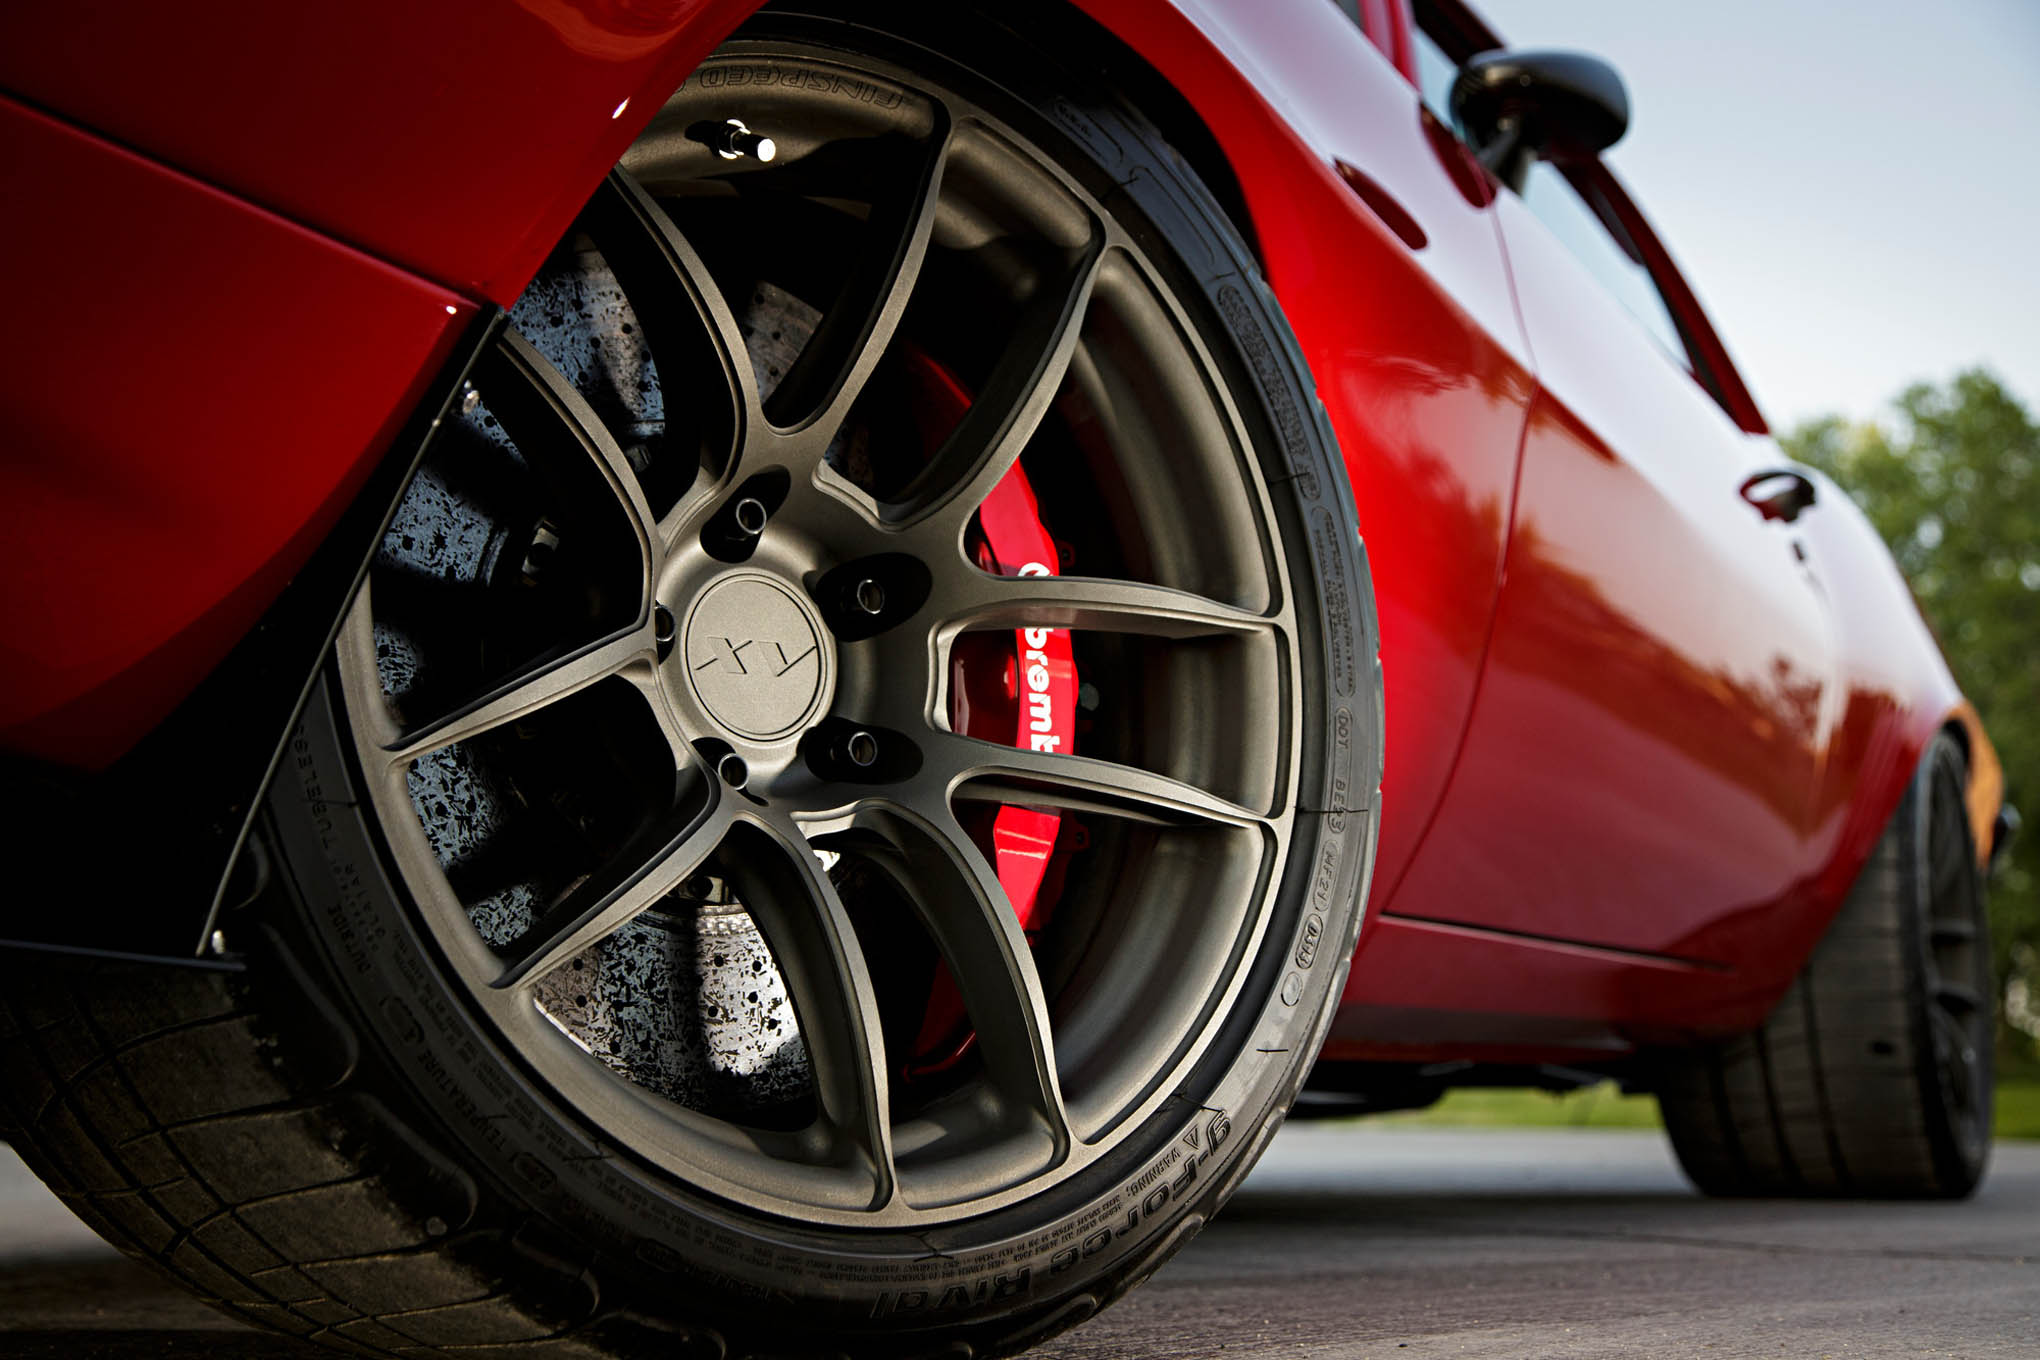 His work with Chevrolet in developing the Z/28 and ZR1 has led to the incorporation of Brembo carbon-ceramic brakes in his latest builds.